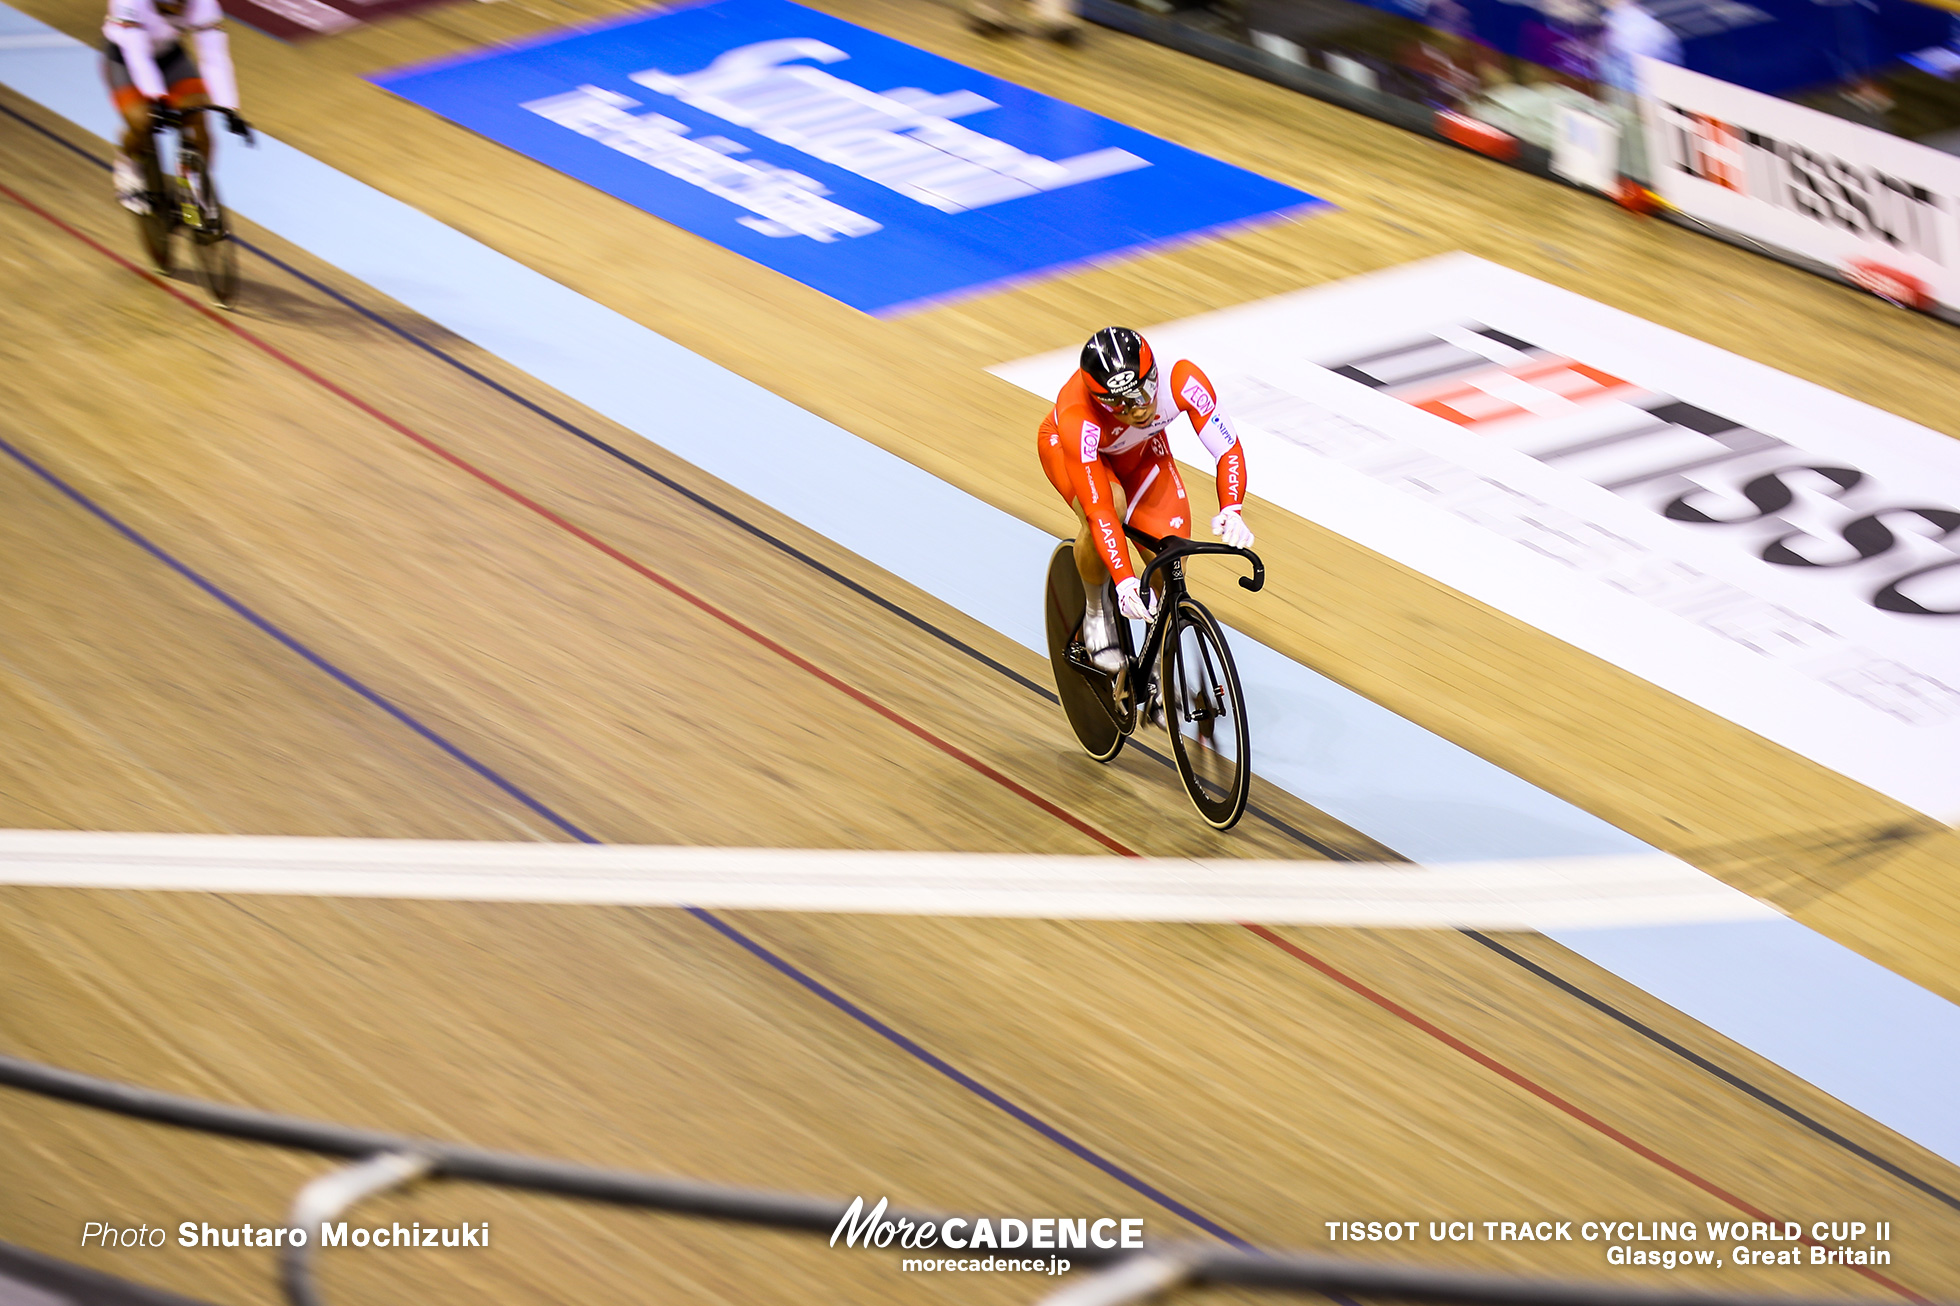 1/4 Finals / Men's Sprint / TISSOT UCI TRACK CYCLING WORLD CUP II, Glasgow, Great Britain